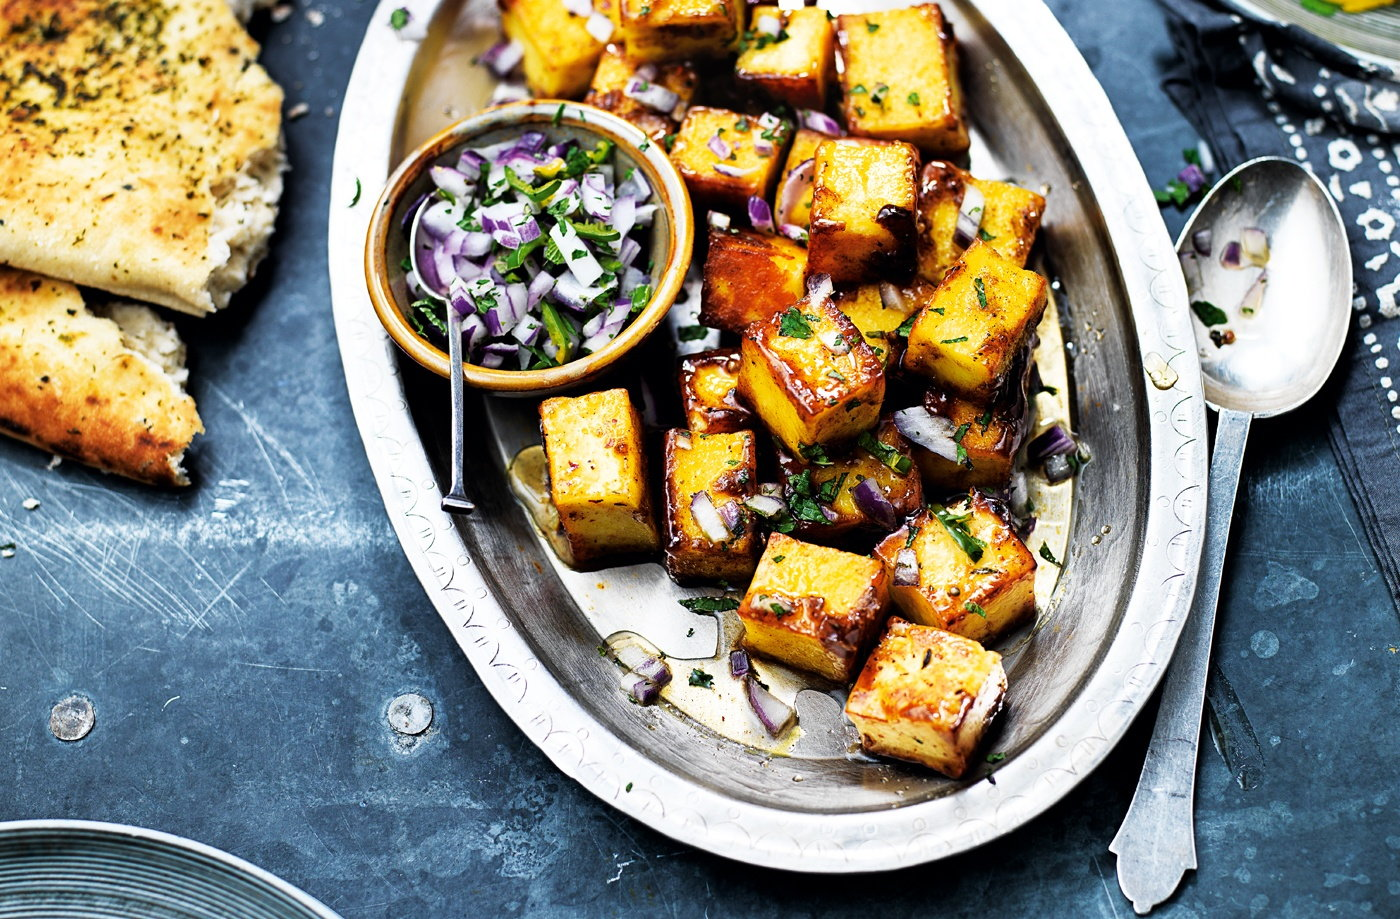 Chilli paneer bites with red onion and mint salad